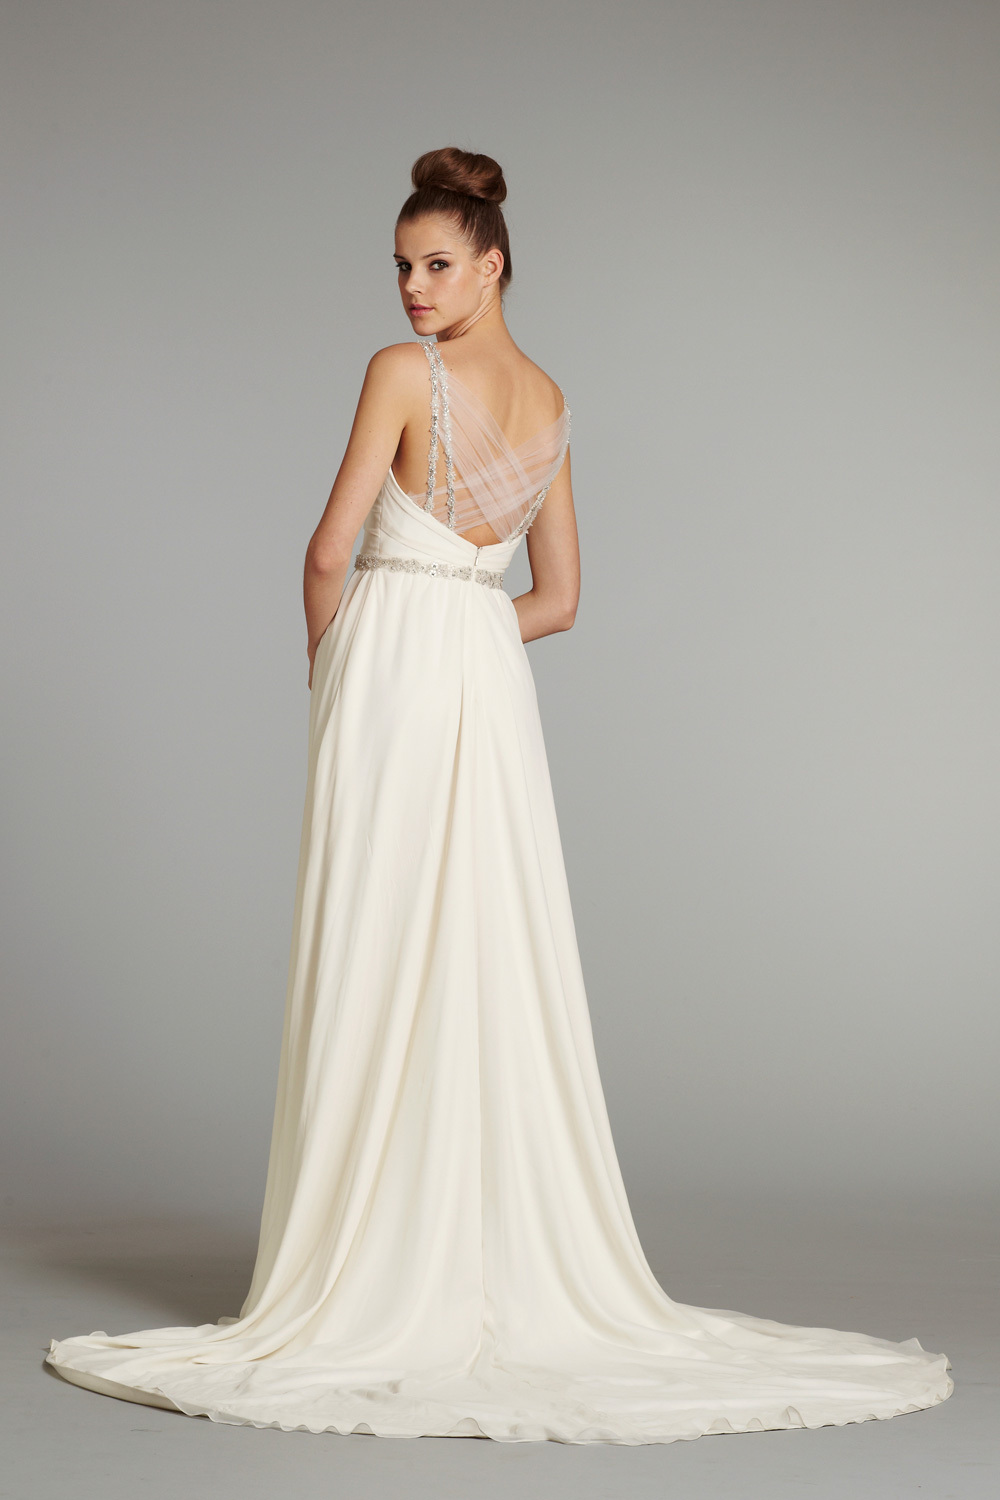 New-bridal-gowns-fall-2012-wedding-dress-hayley-paige-for-jlm-couture-nina-b.full